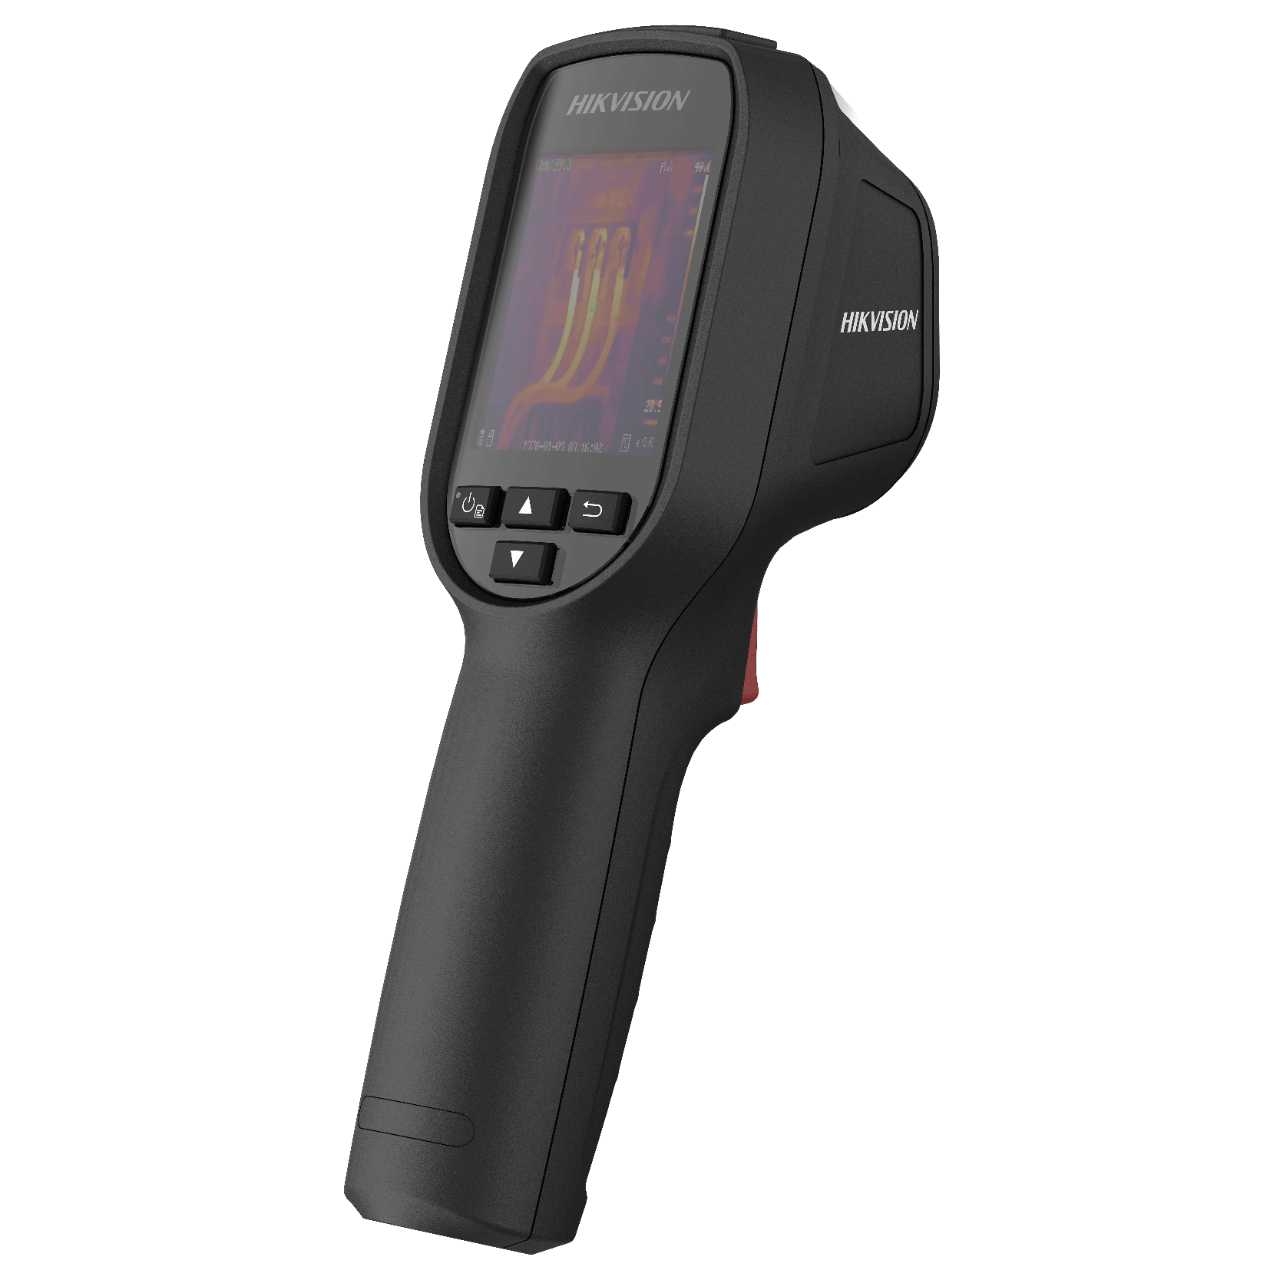 Hikvision Handheld Thermography Camera